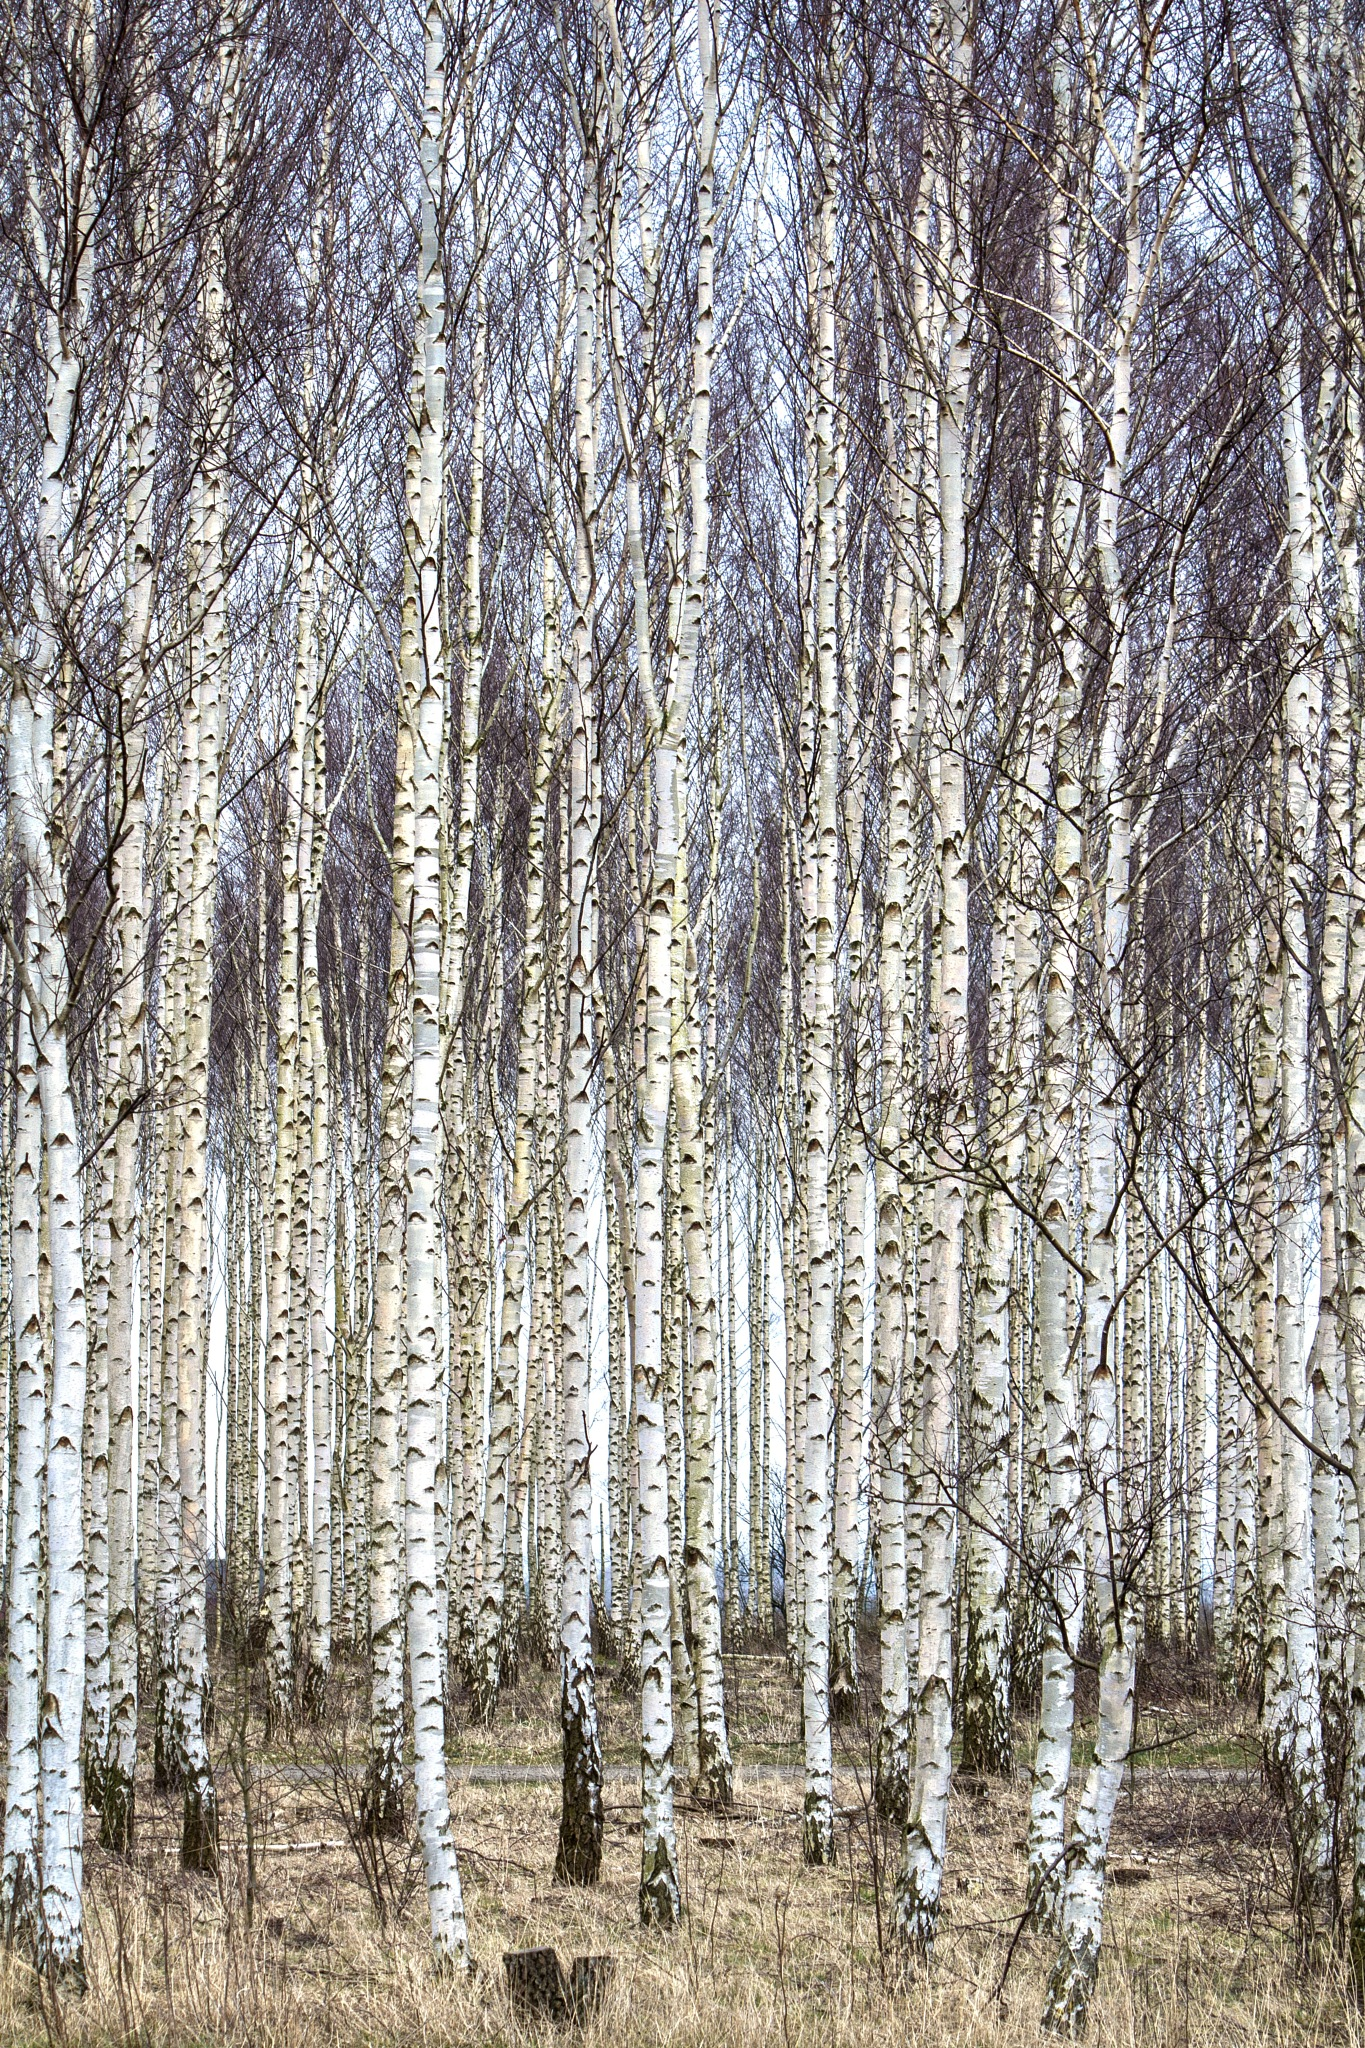 The birch forest by AvieW